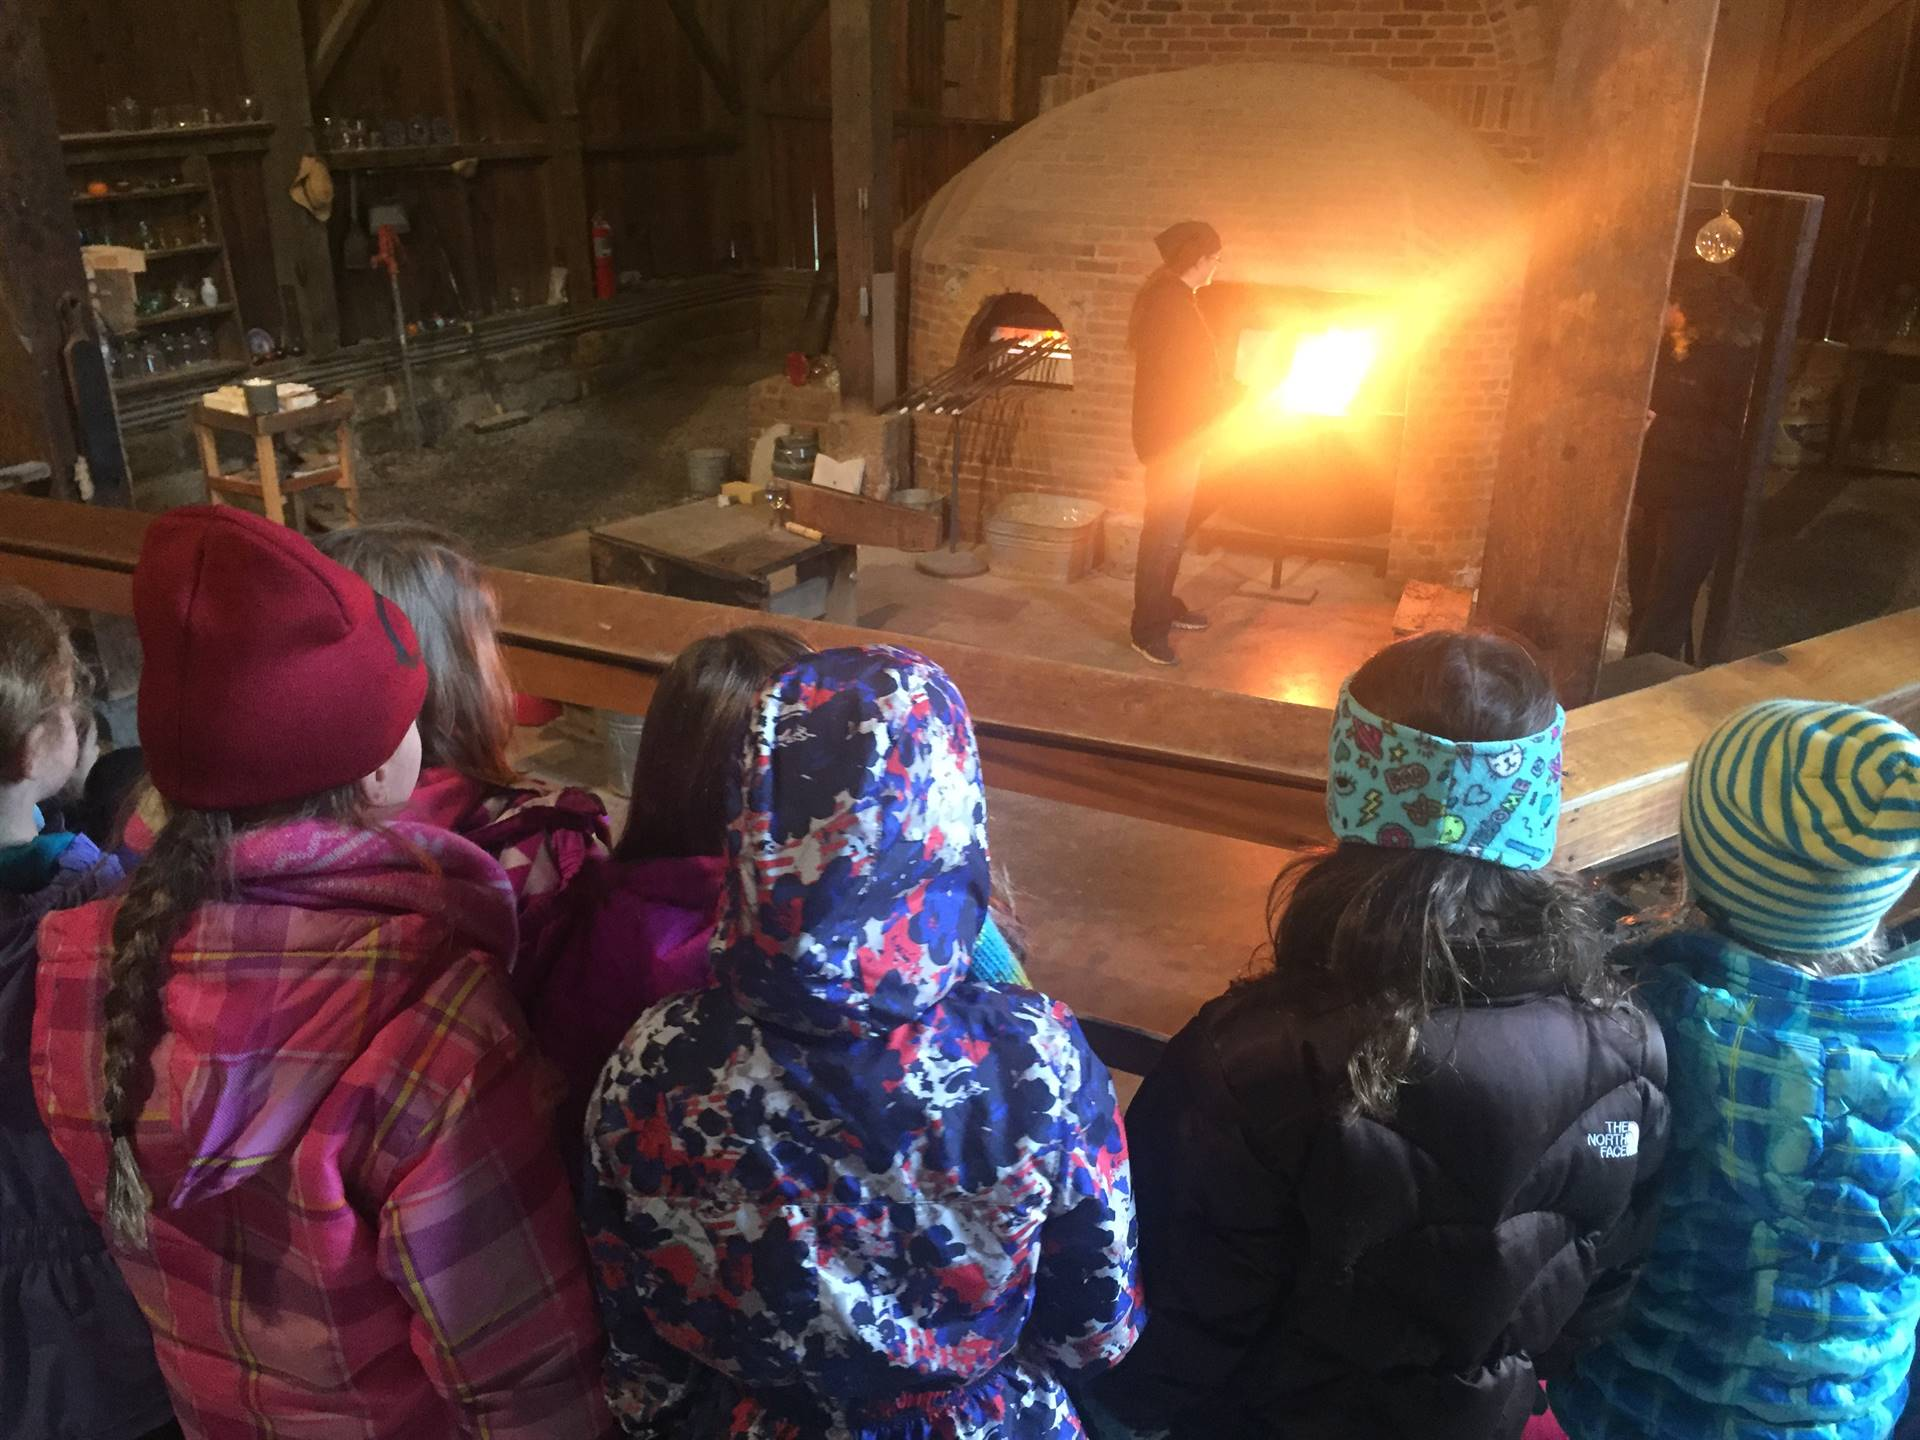 Students watching a glass blower make a Christmas ornament at Hale Farm